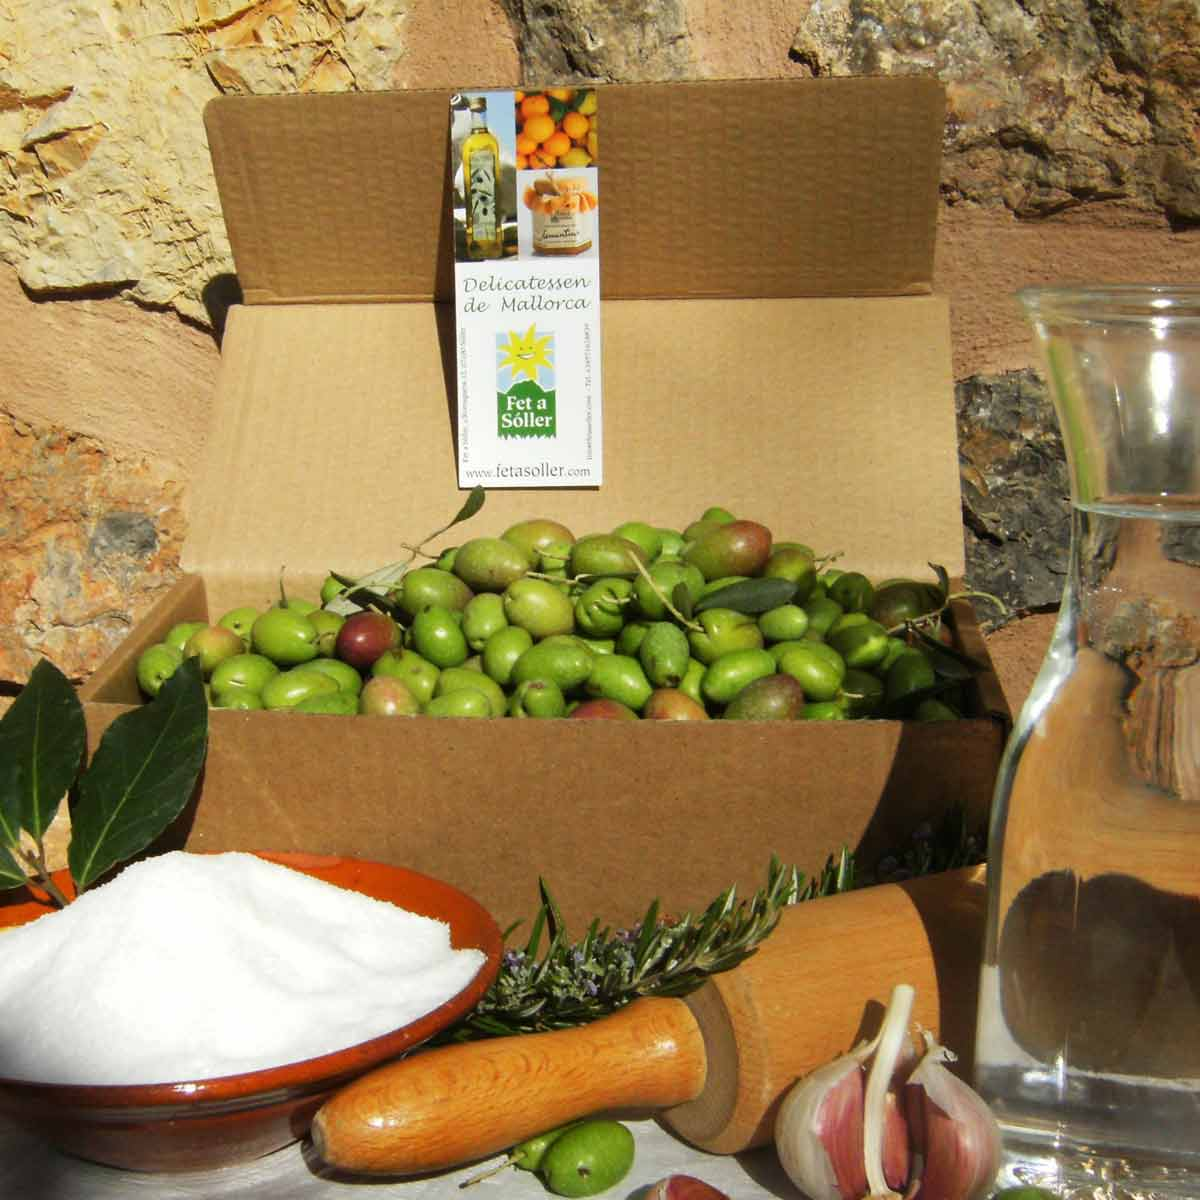 Fresh green olives from Mallorca for marinating